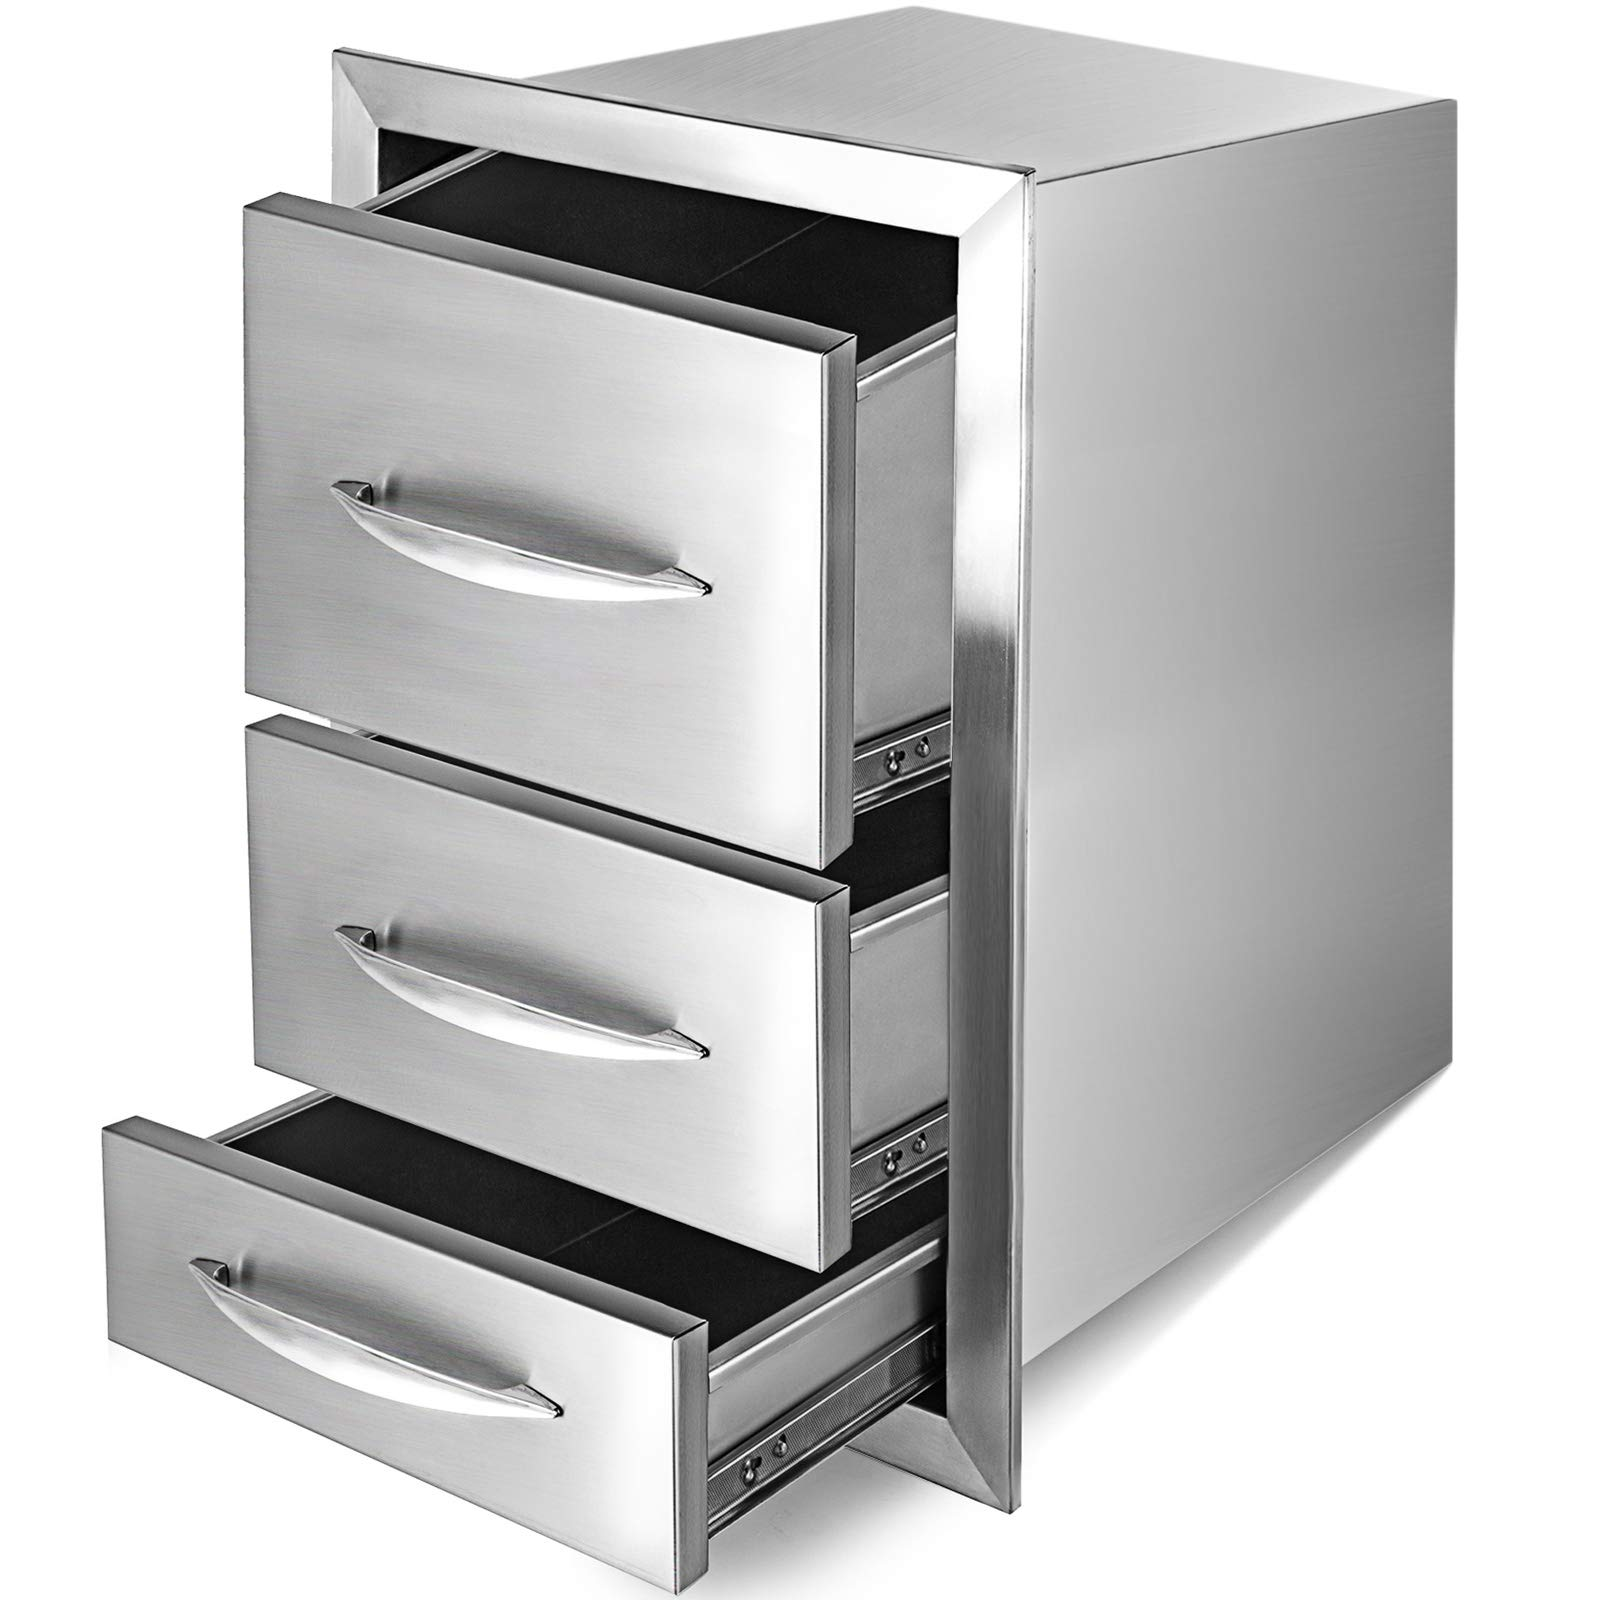 Mophorn 15''x21'' Outdoor Kitchen Drawer Stainless Steel Triple Access Drawer BBQ Storage with Chrome Handle Flush Mount Sliver by Mophorn (Image #3)